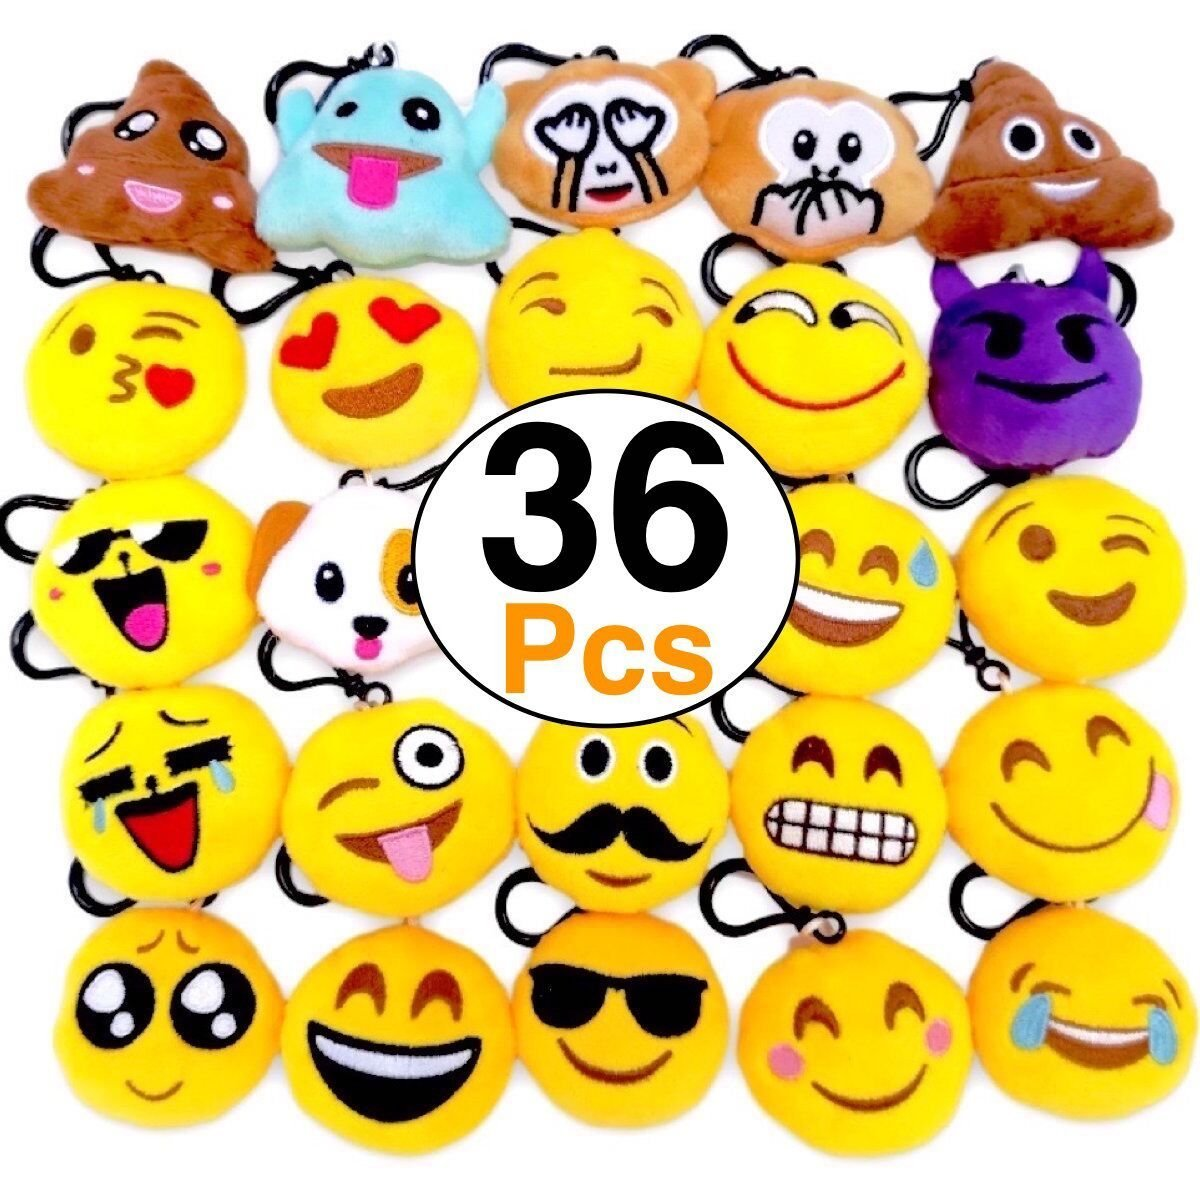 O'Hill 36 Pack Emoji Keychains Mini Plush Pillows Key Ring for Birthday Event Party Favors Supplies